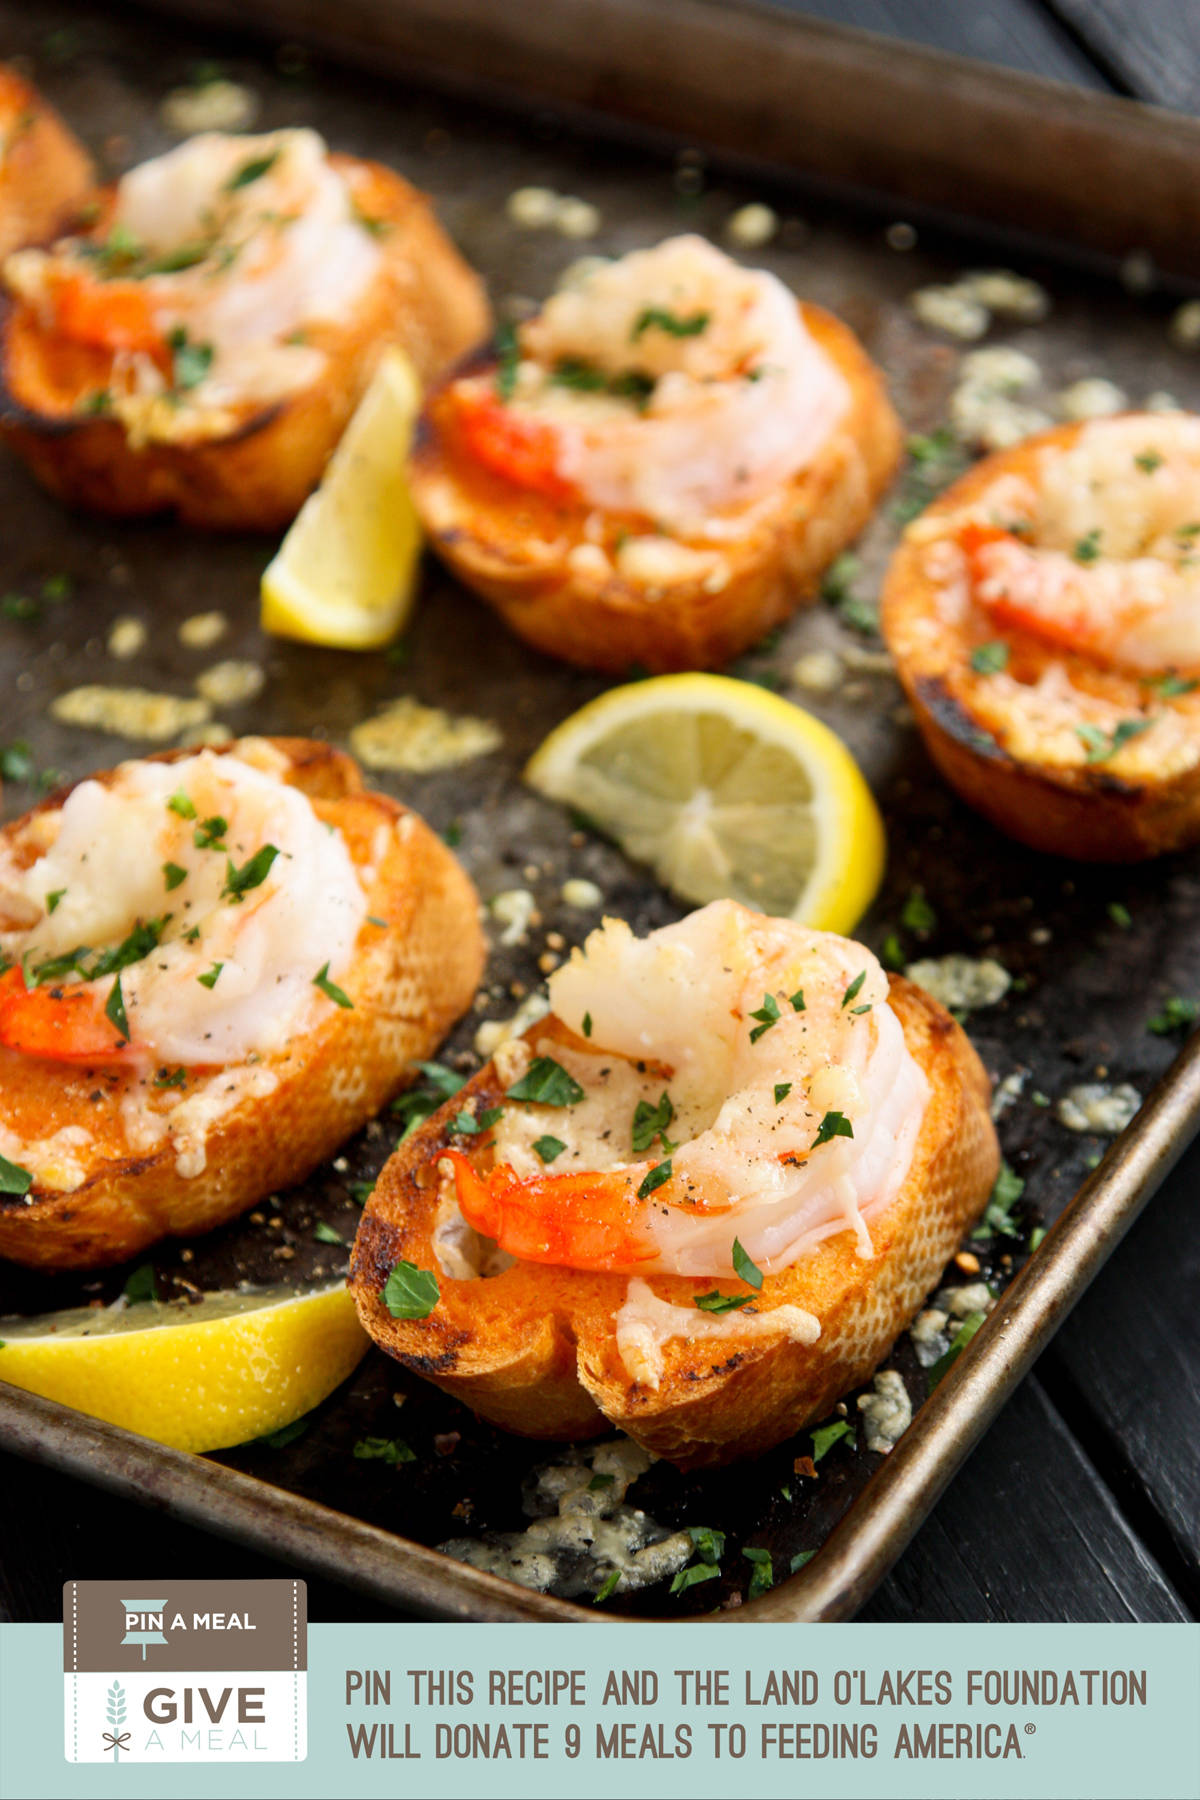 Sriracha Garlic Toasts with Shrimp - Each pin donates 9 meals to Feeding America #giveameal #kitchenconvo afarmgirlsdabbles.com